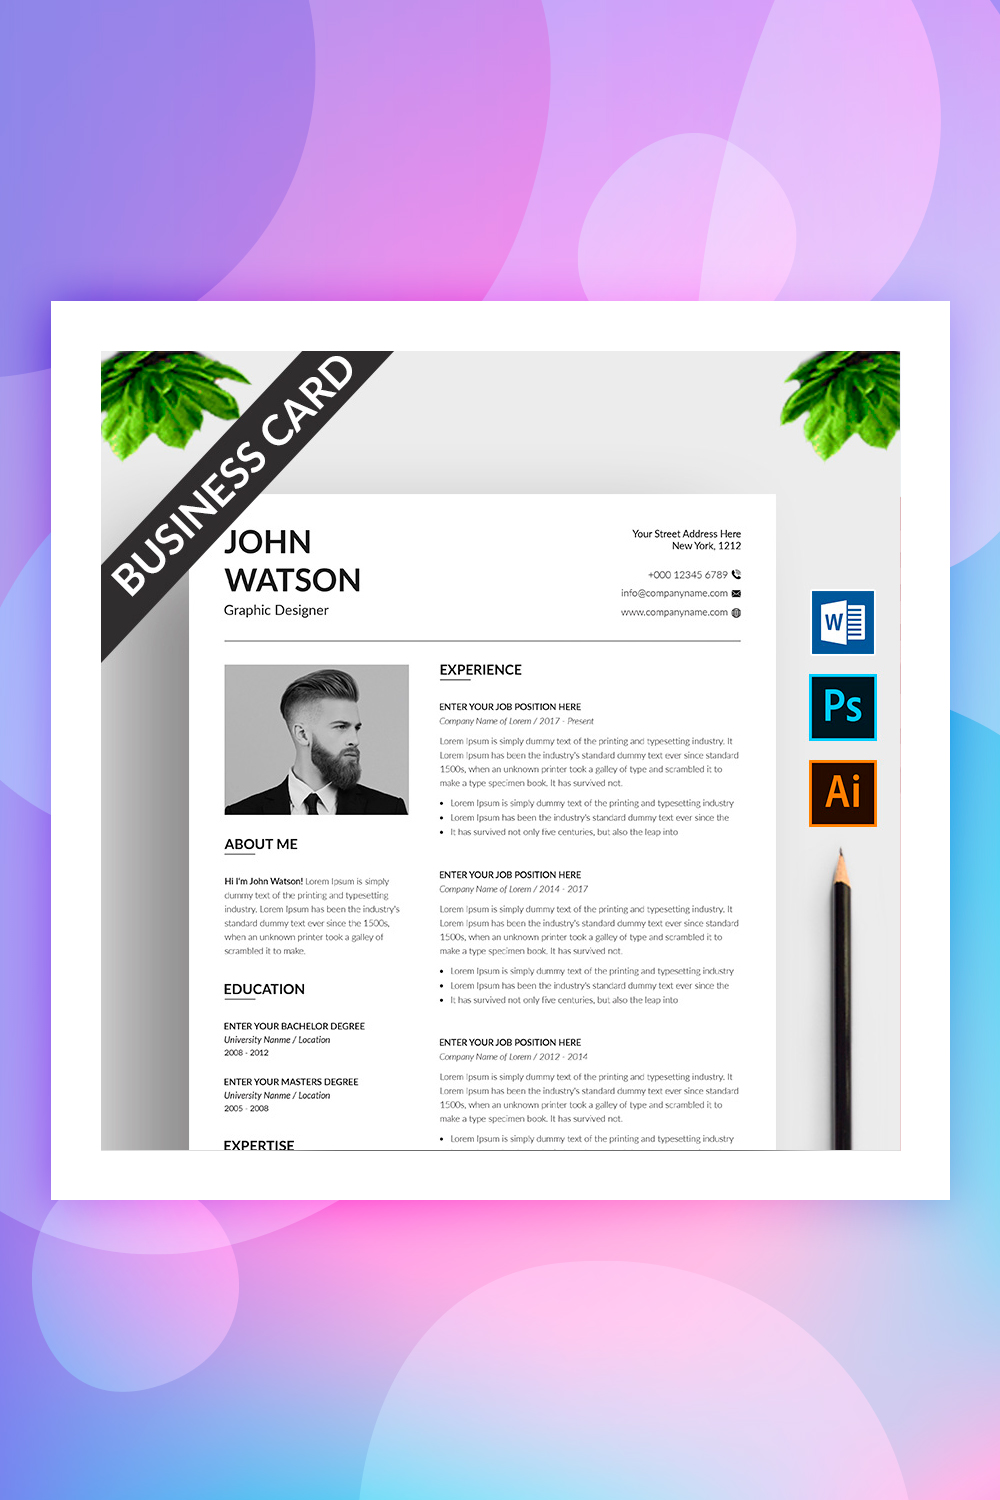 John Watson Resume Template with Business Card Resume Template